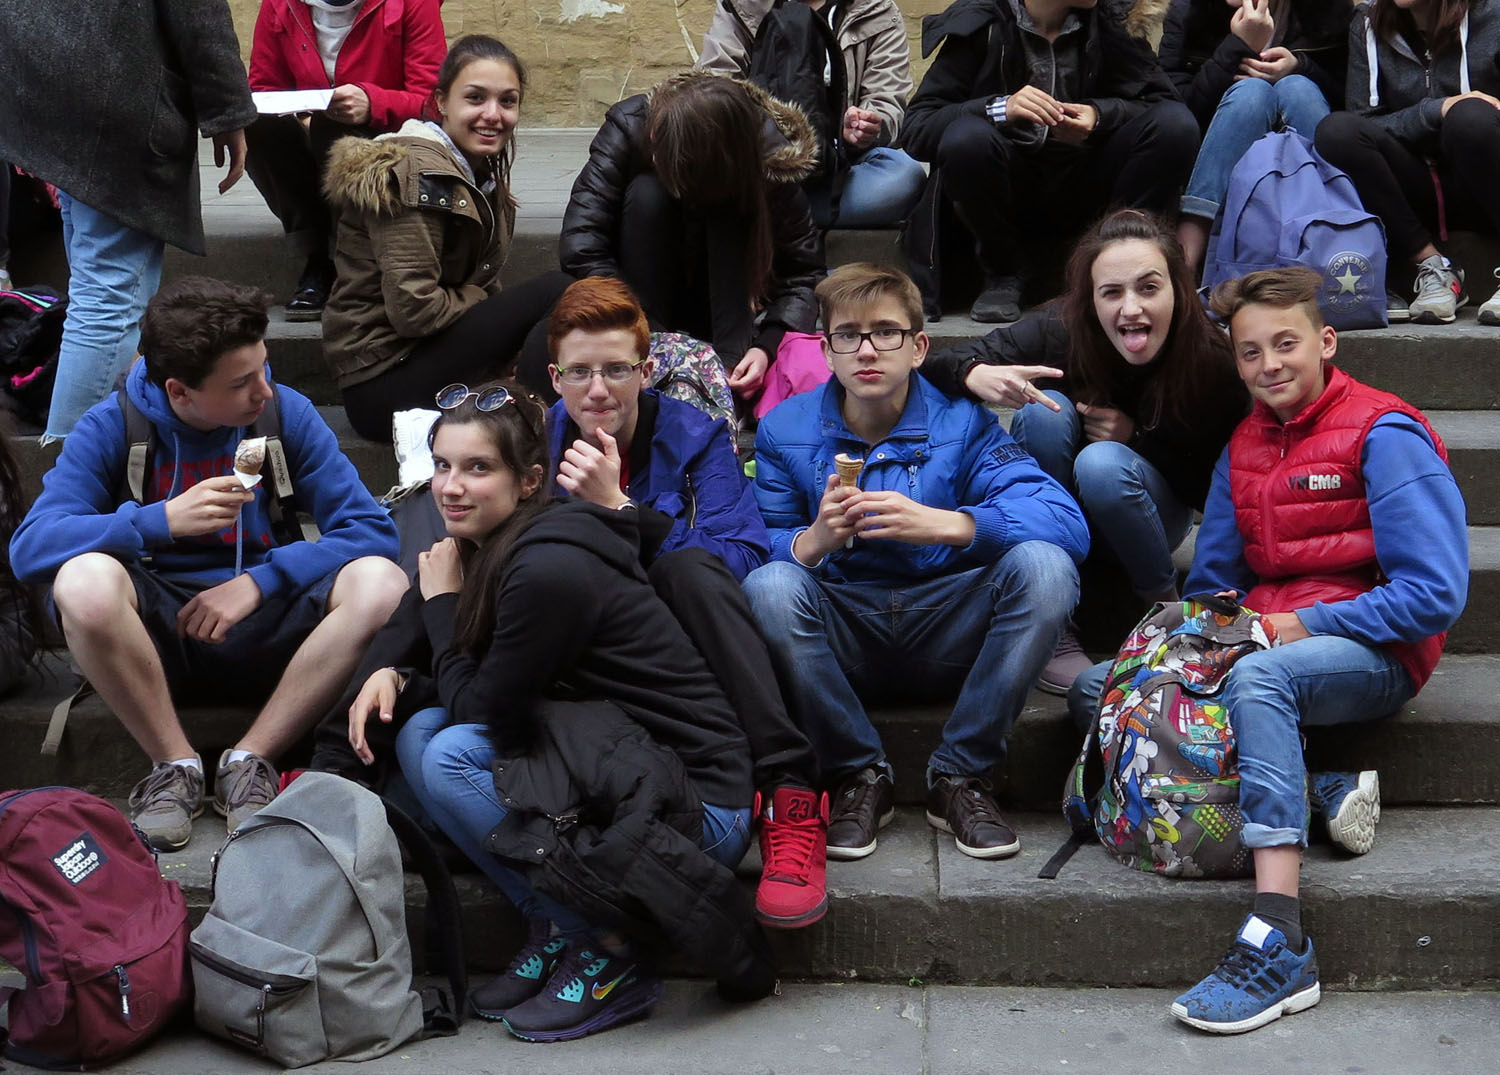 Italy-Florence-Street-Scenes-Young-People